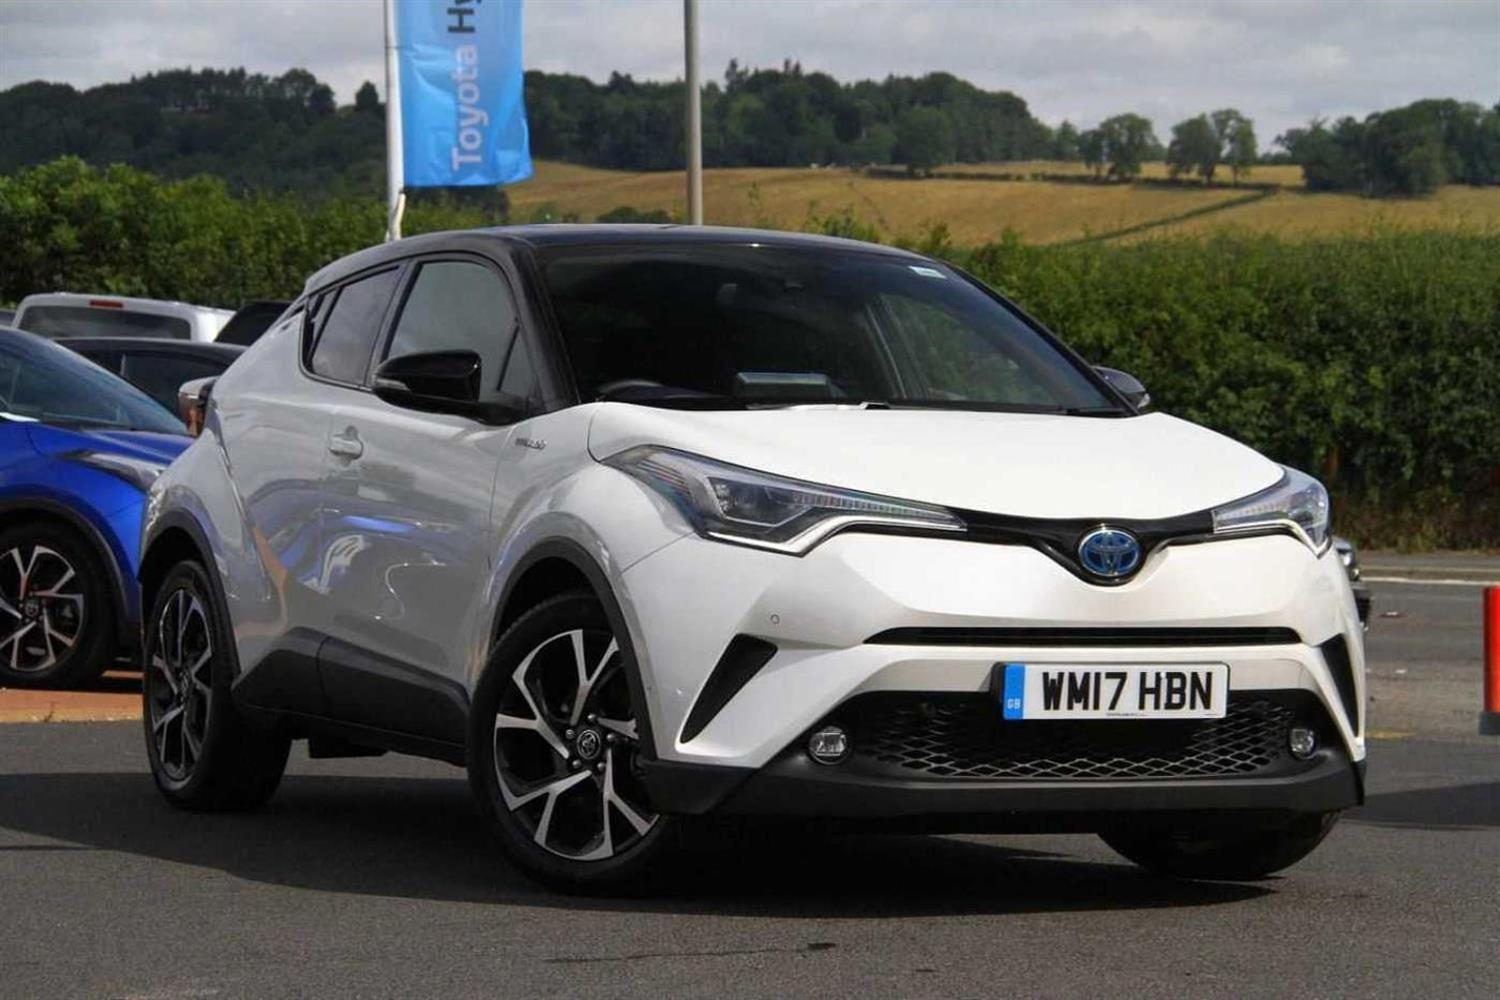 Toyota C-hr 1.8 (122bhp) Dynamic Coupe Hybrid White